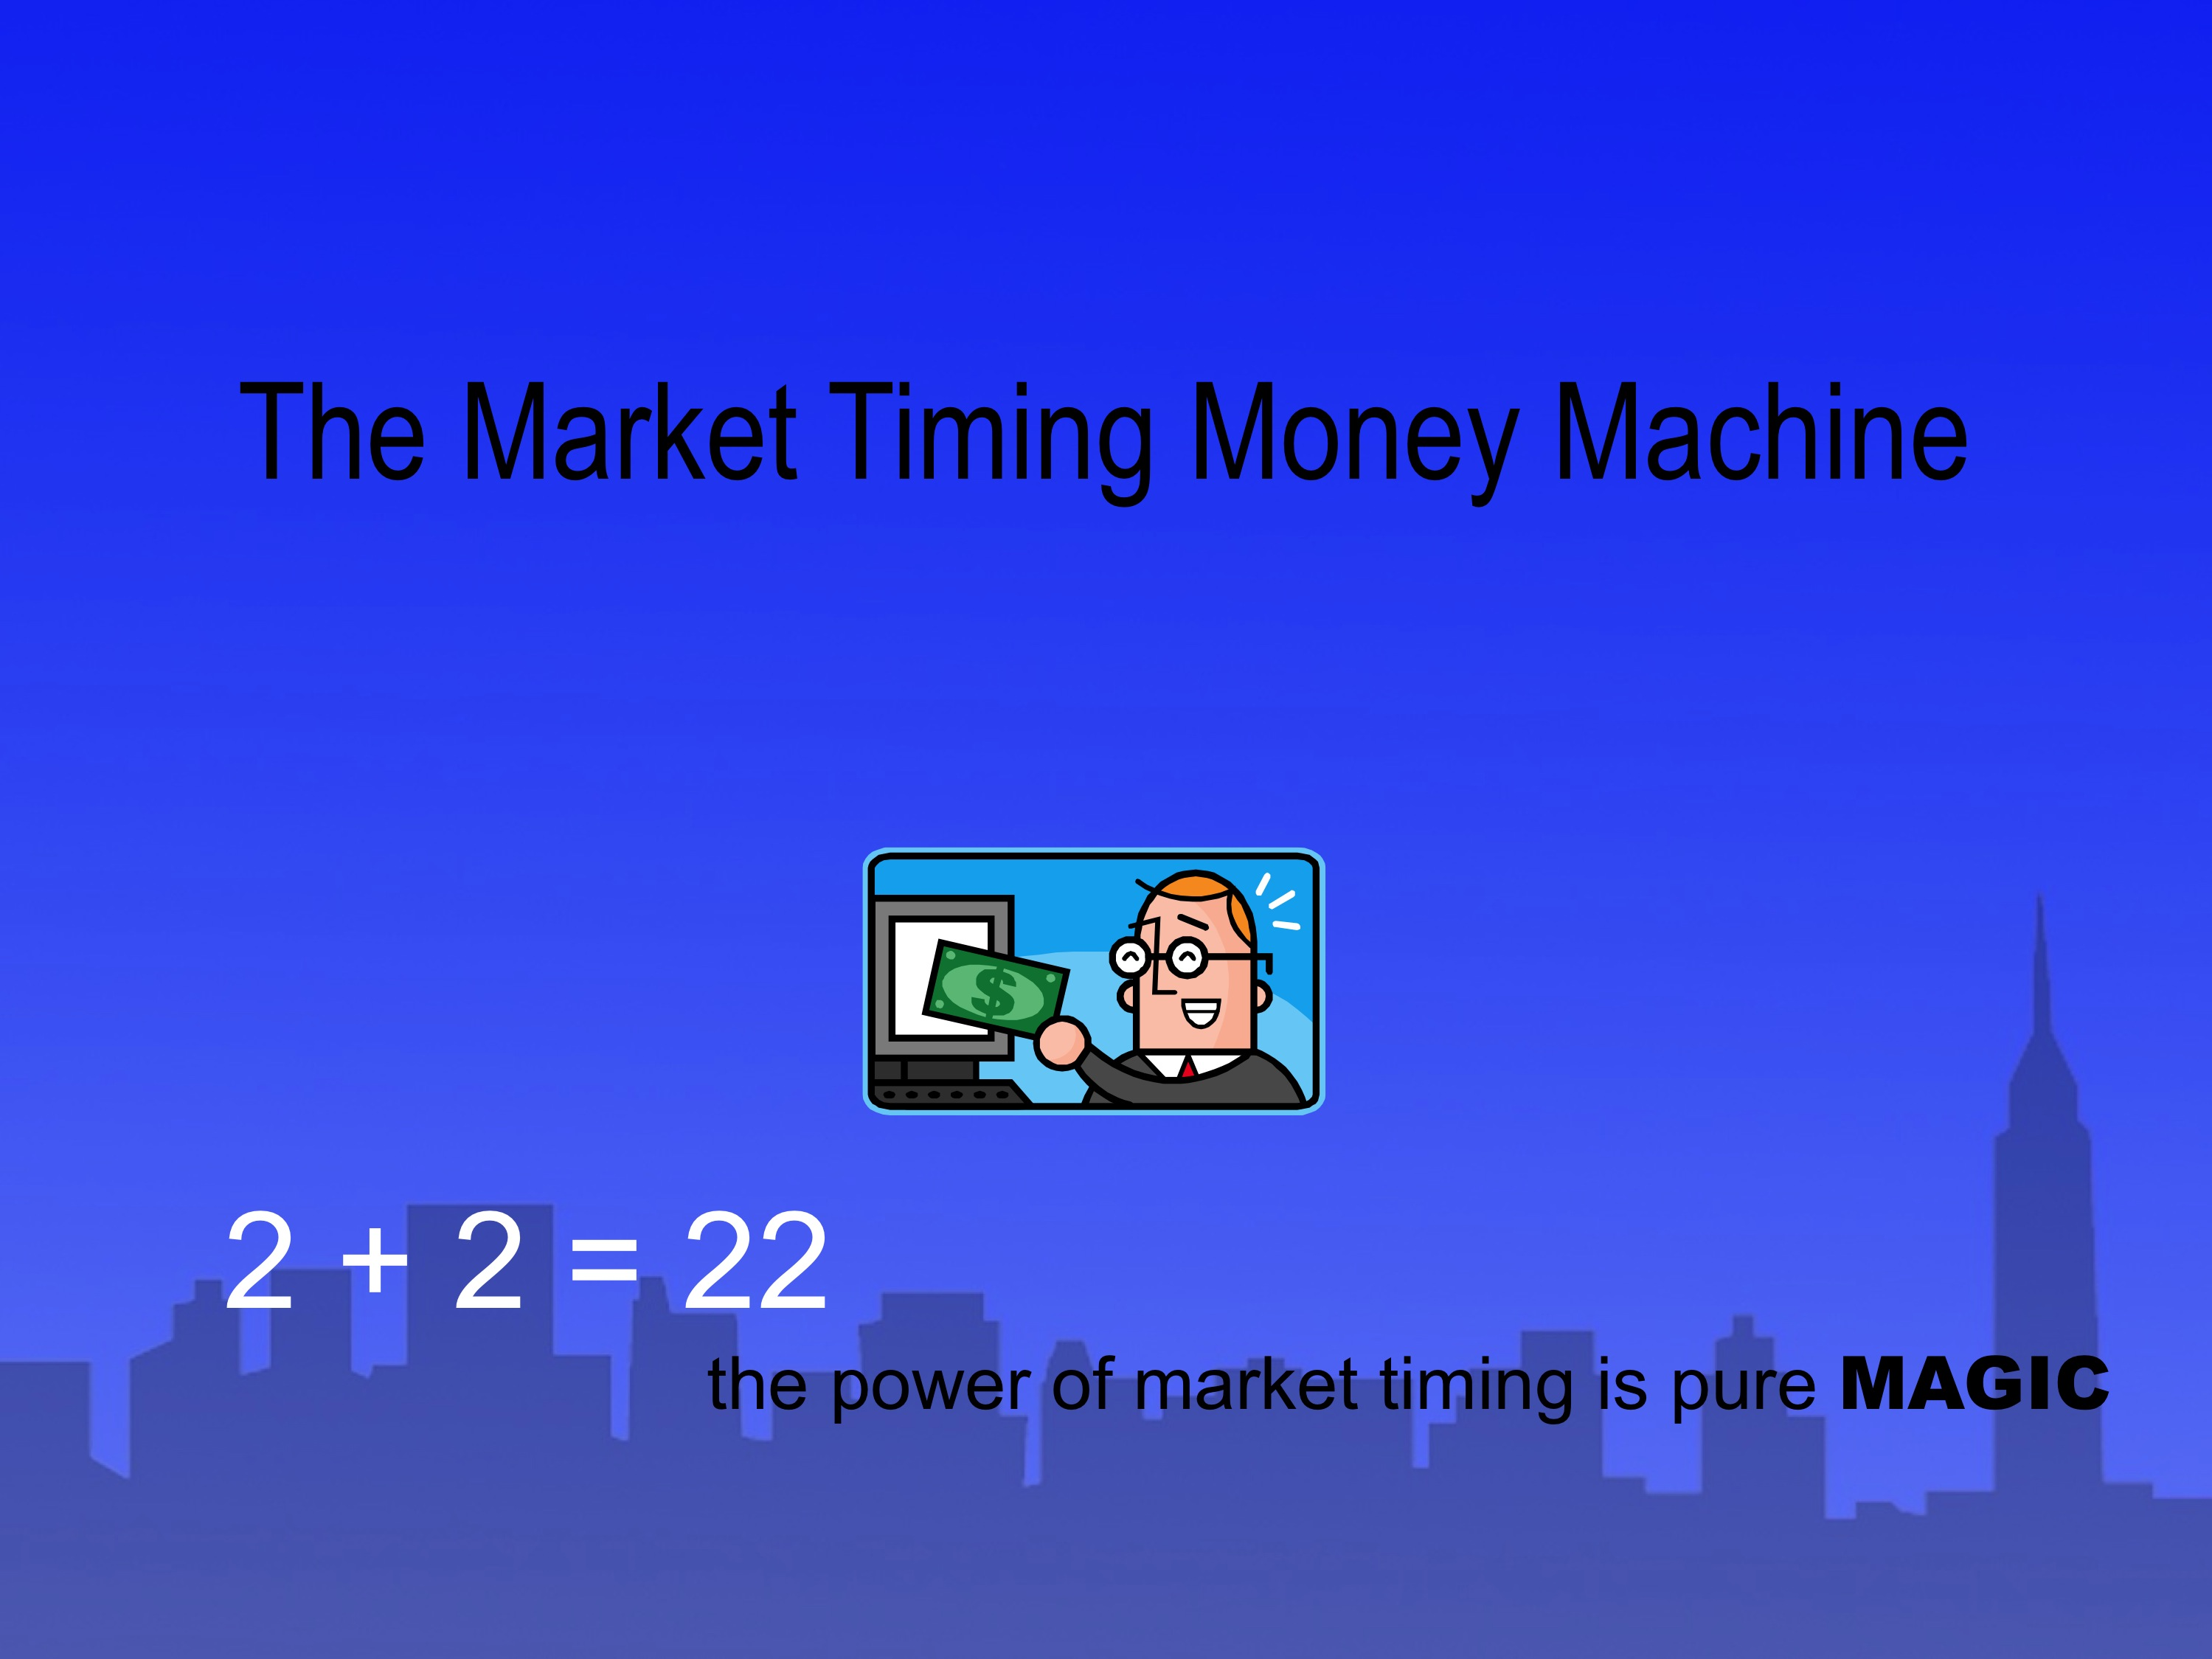 show you how to make money from financial markets